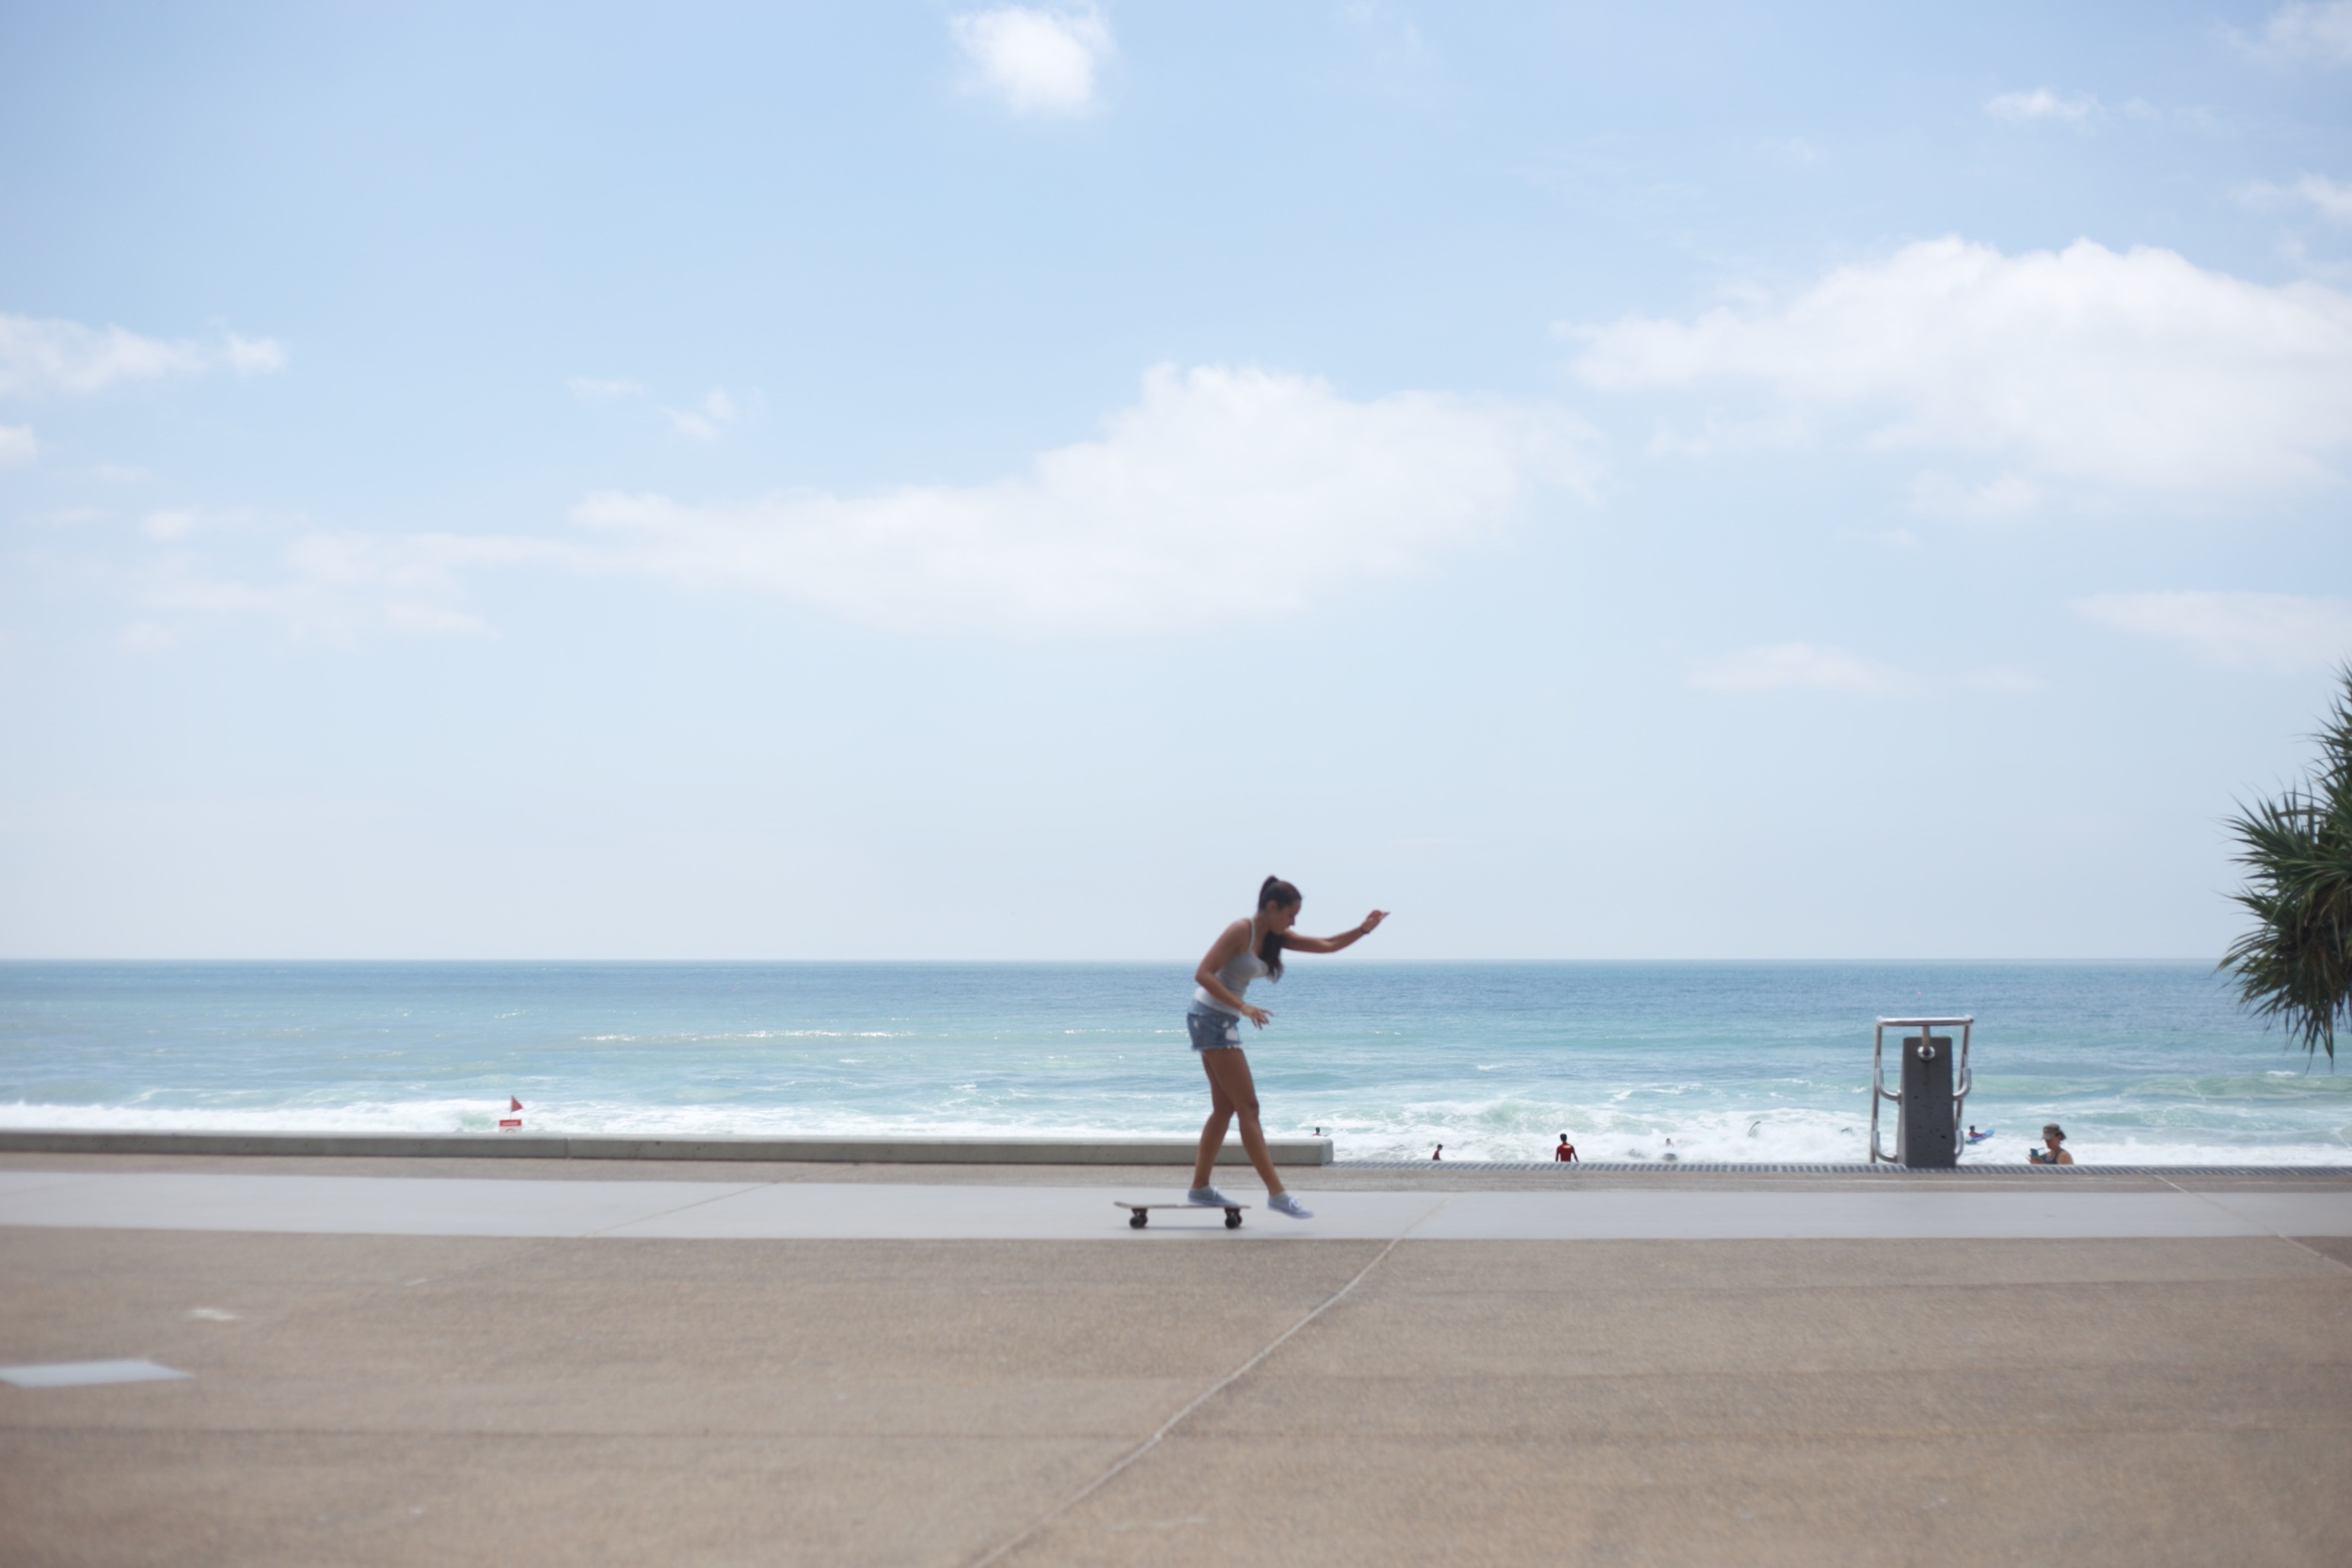 A girl on a long board by the beach in Aussie.